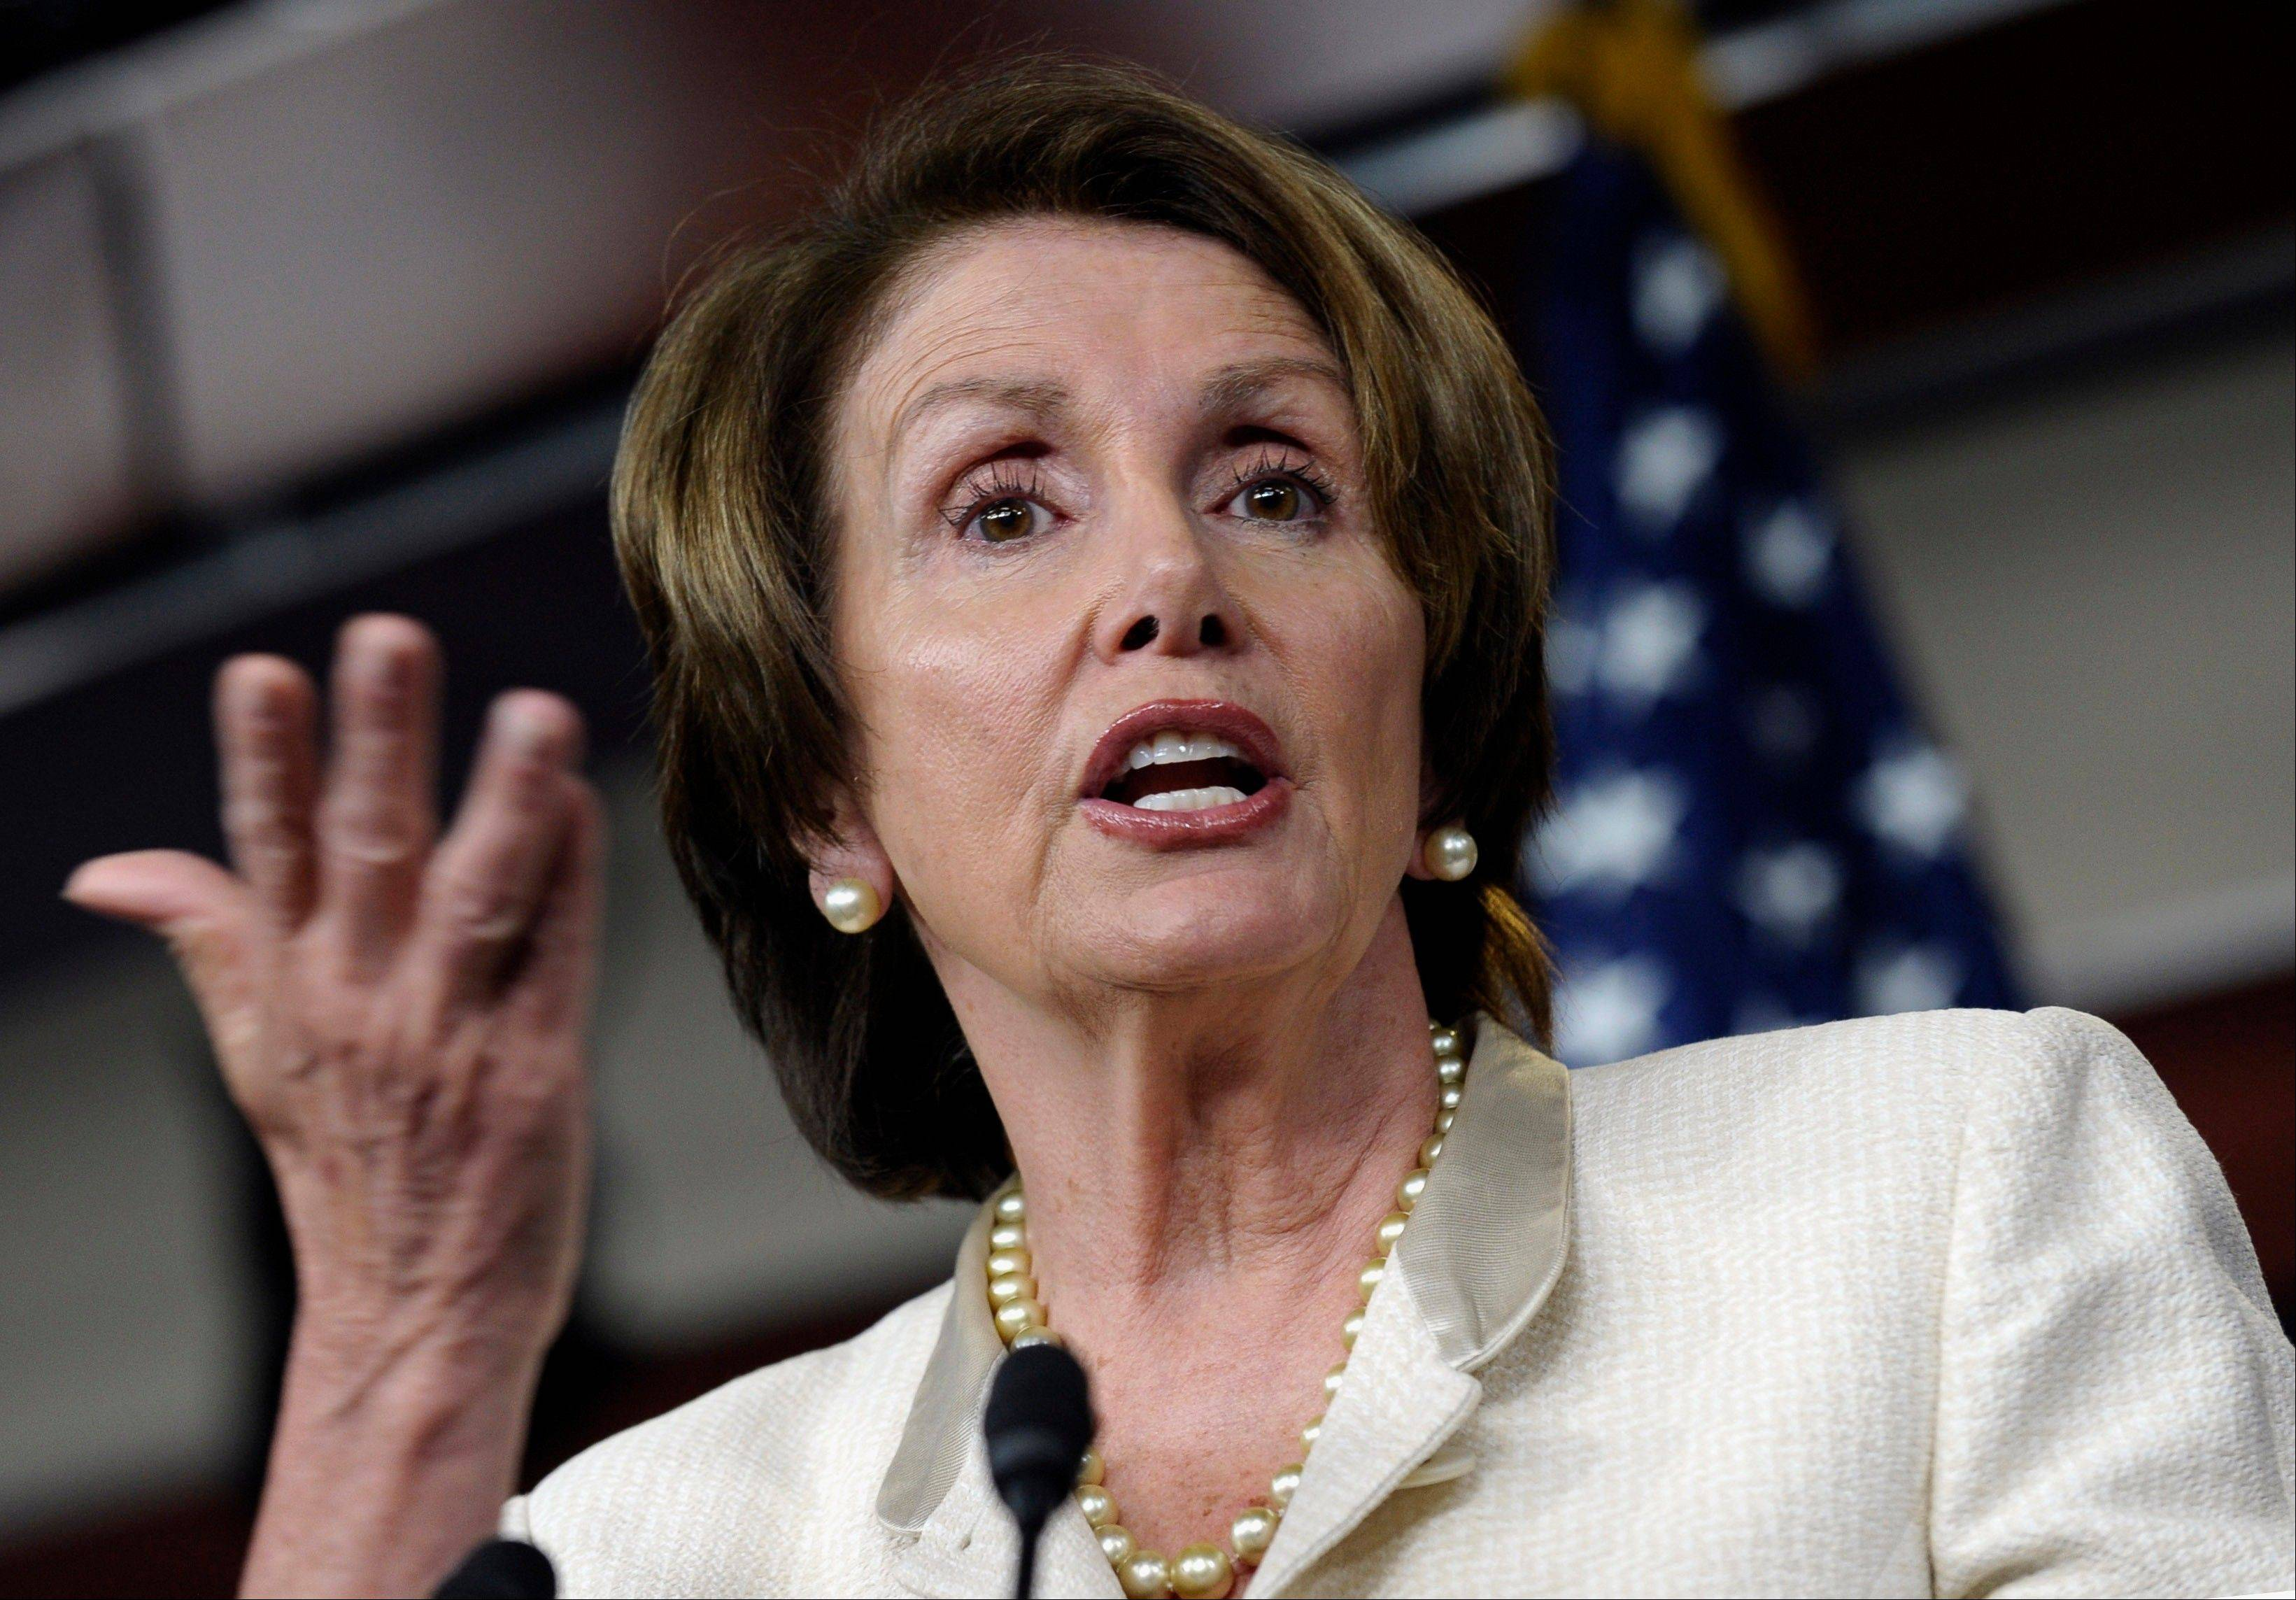 House Minority Leader Nancy Pelosi of California said House Republicans' objections to immigration reform containing a pathway to citizenship for those immigrants already here could block GOP hopes of ever winning the White House.